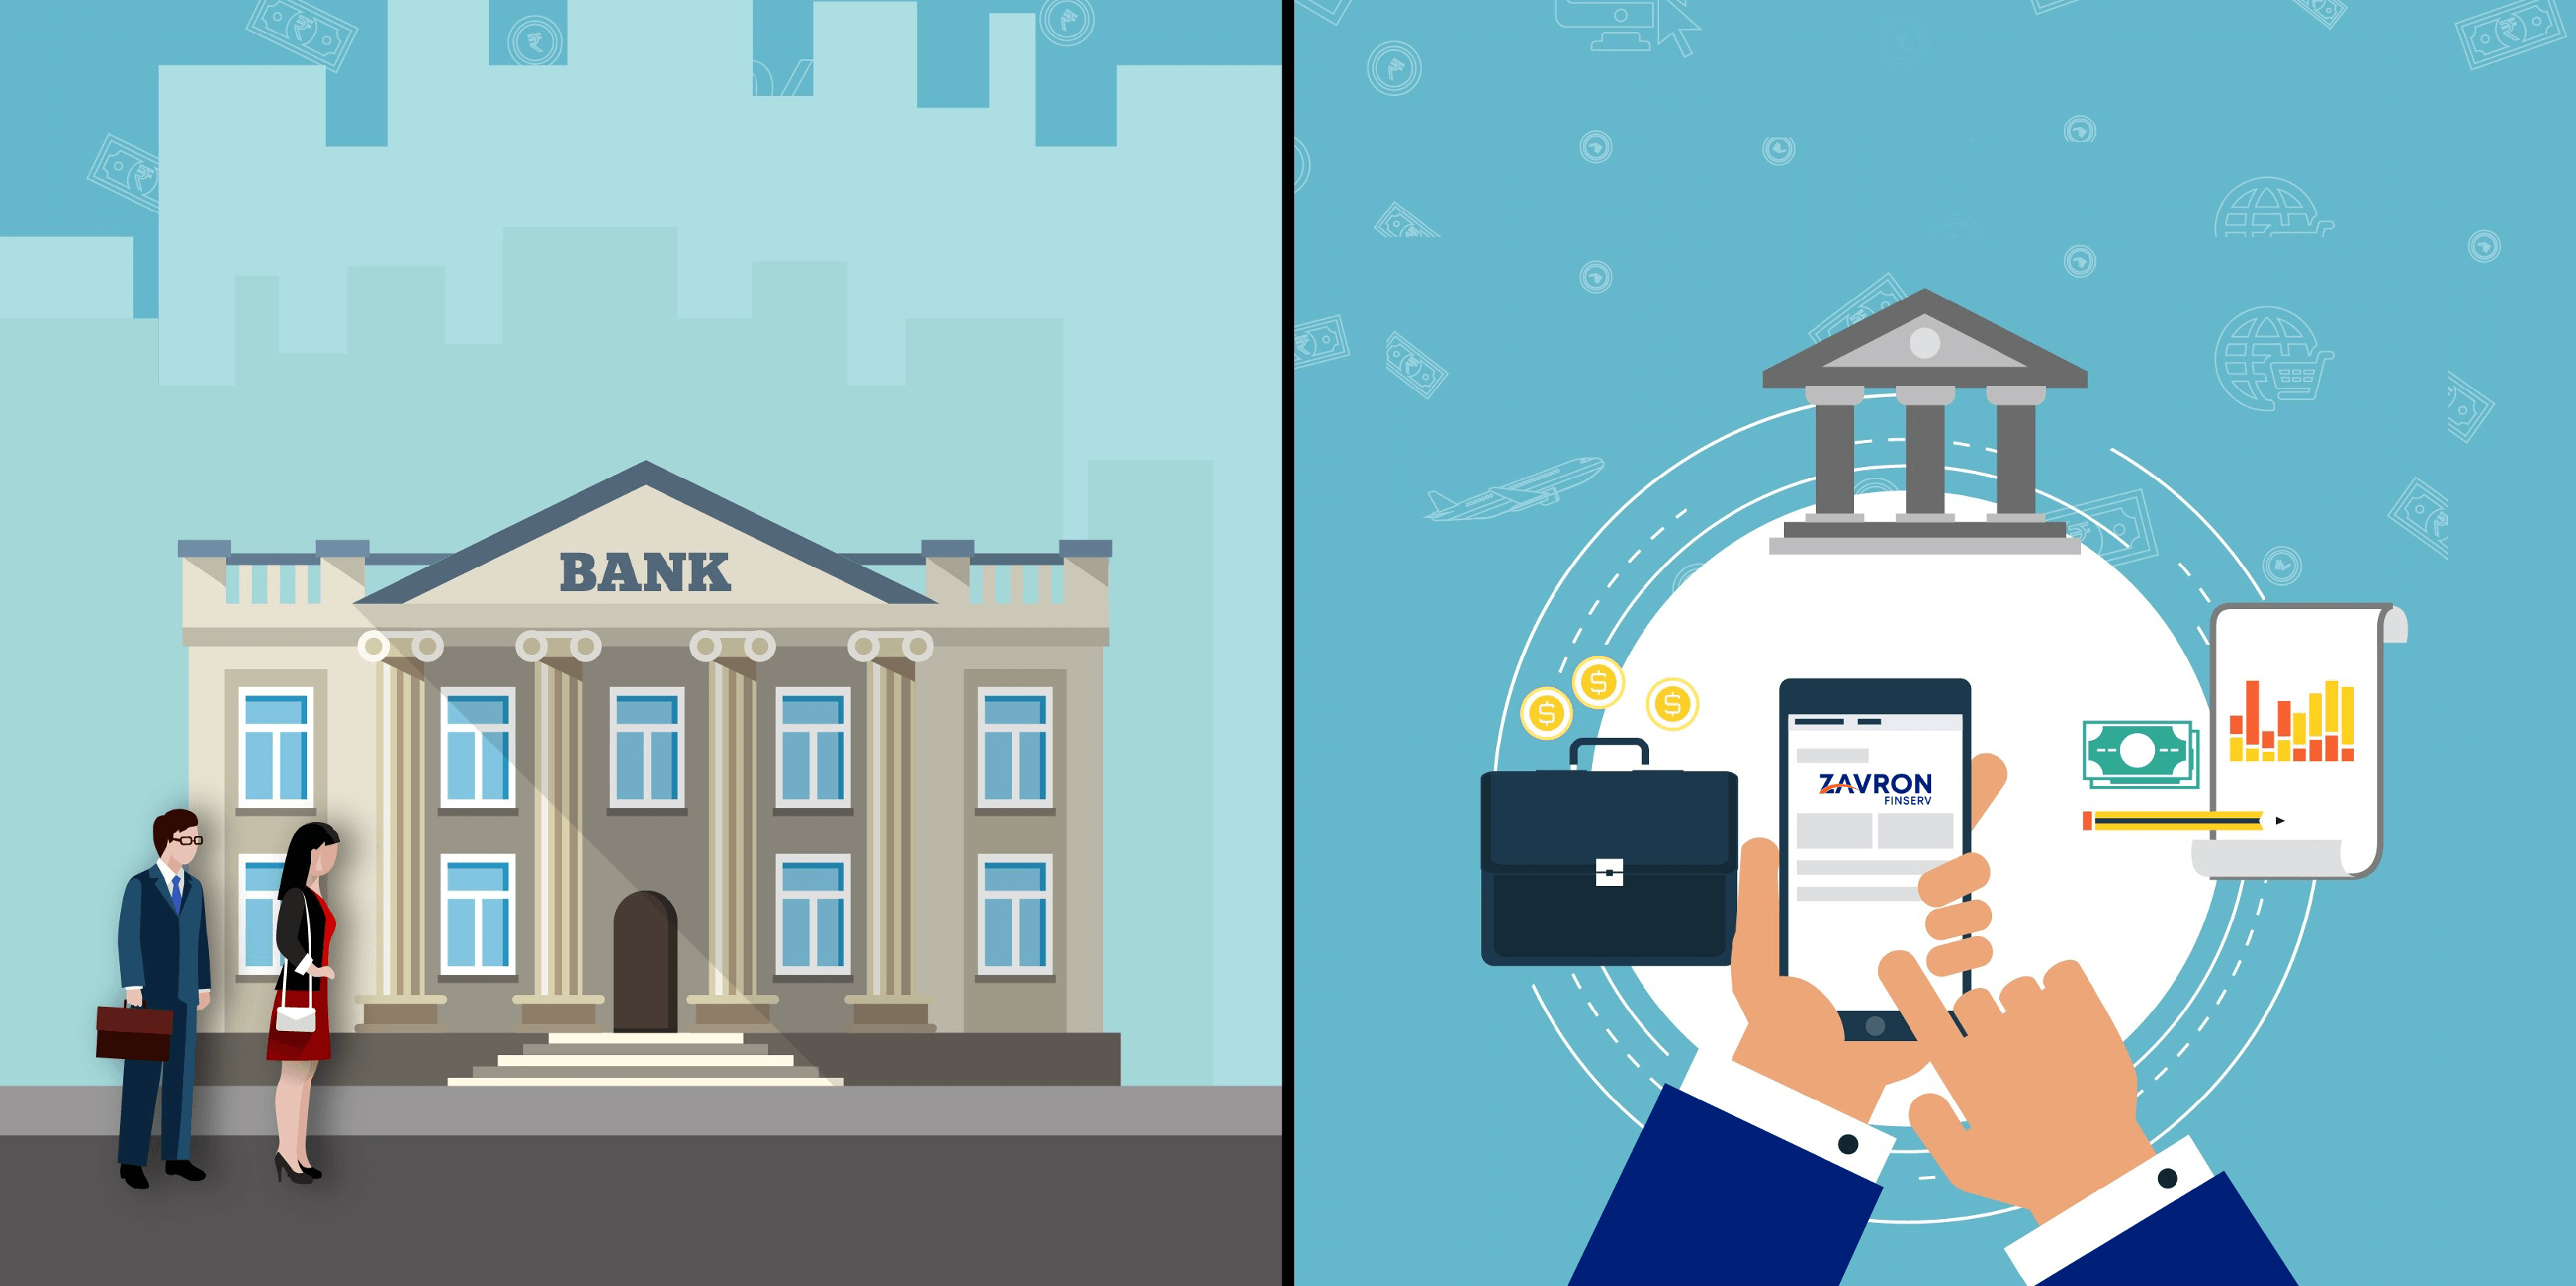 How Is Fintech Different from Banks?